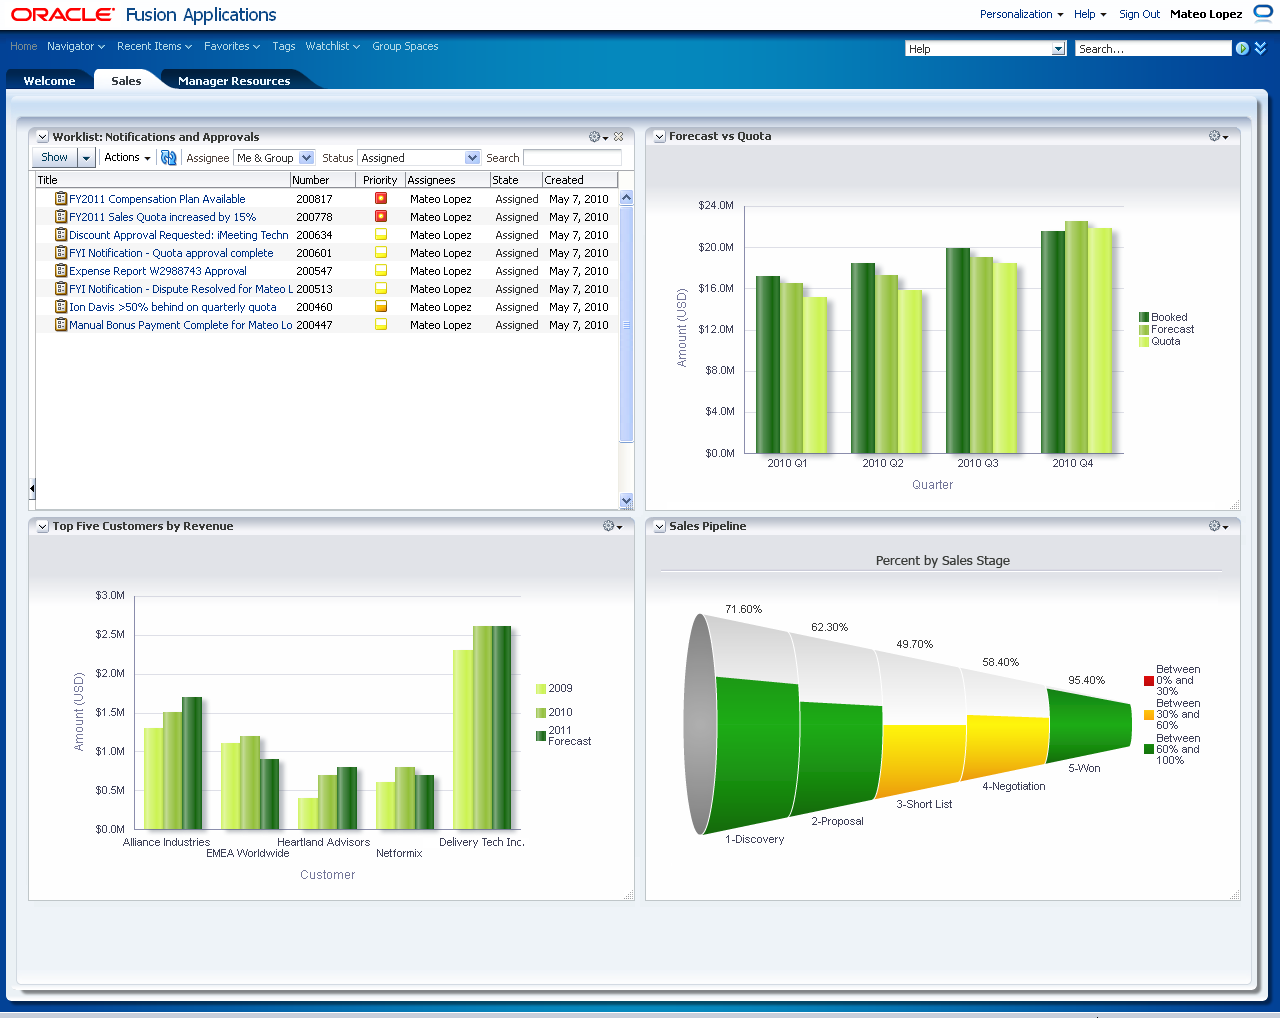 Oracle Fusion CRM for sales manager